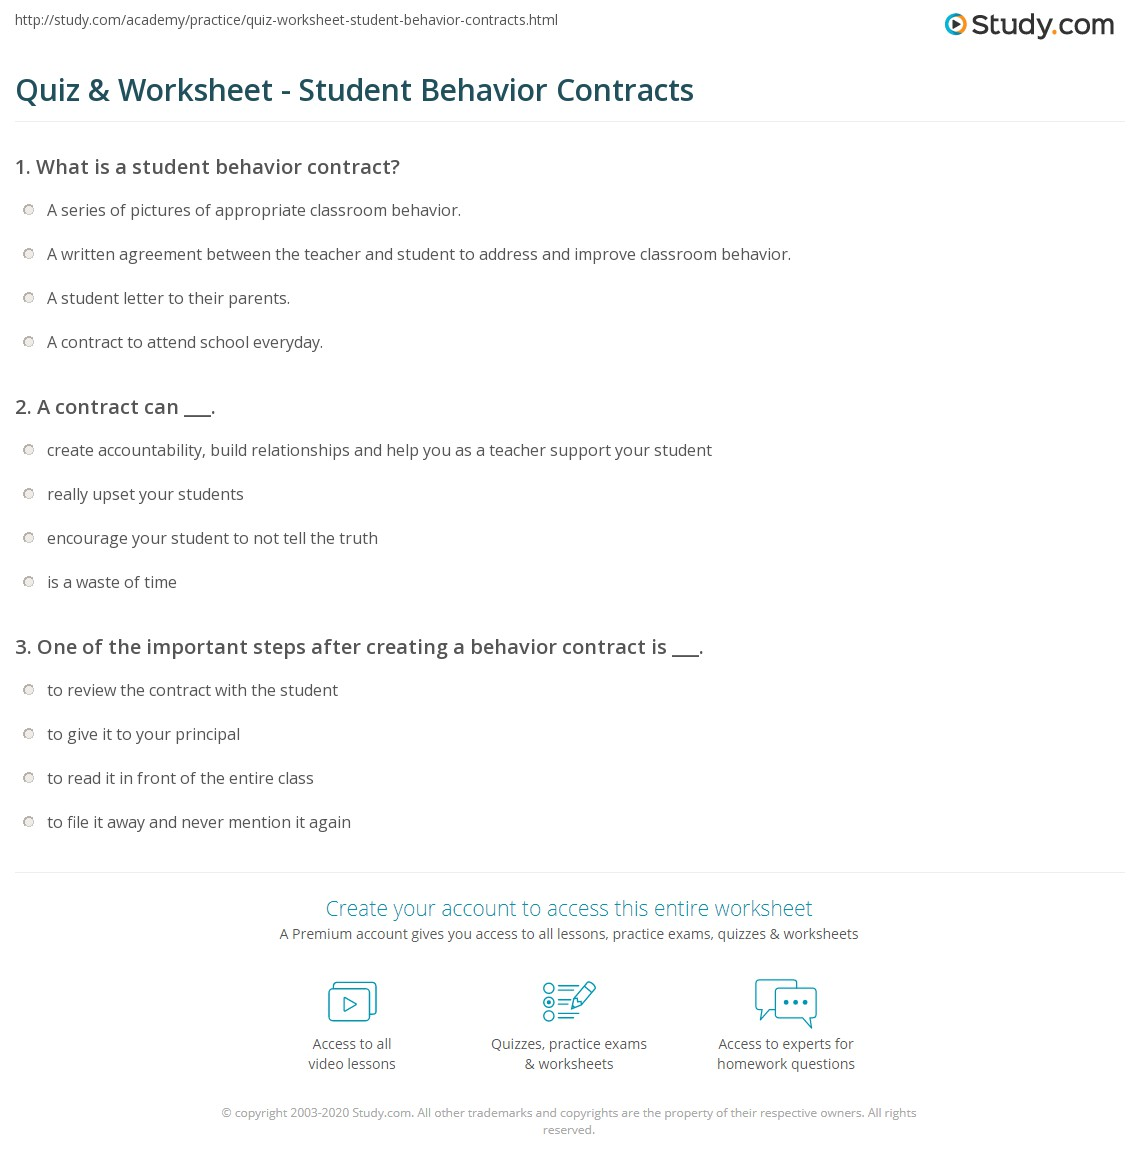 print student behavior contracts examples and templates worksheet